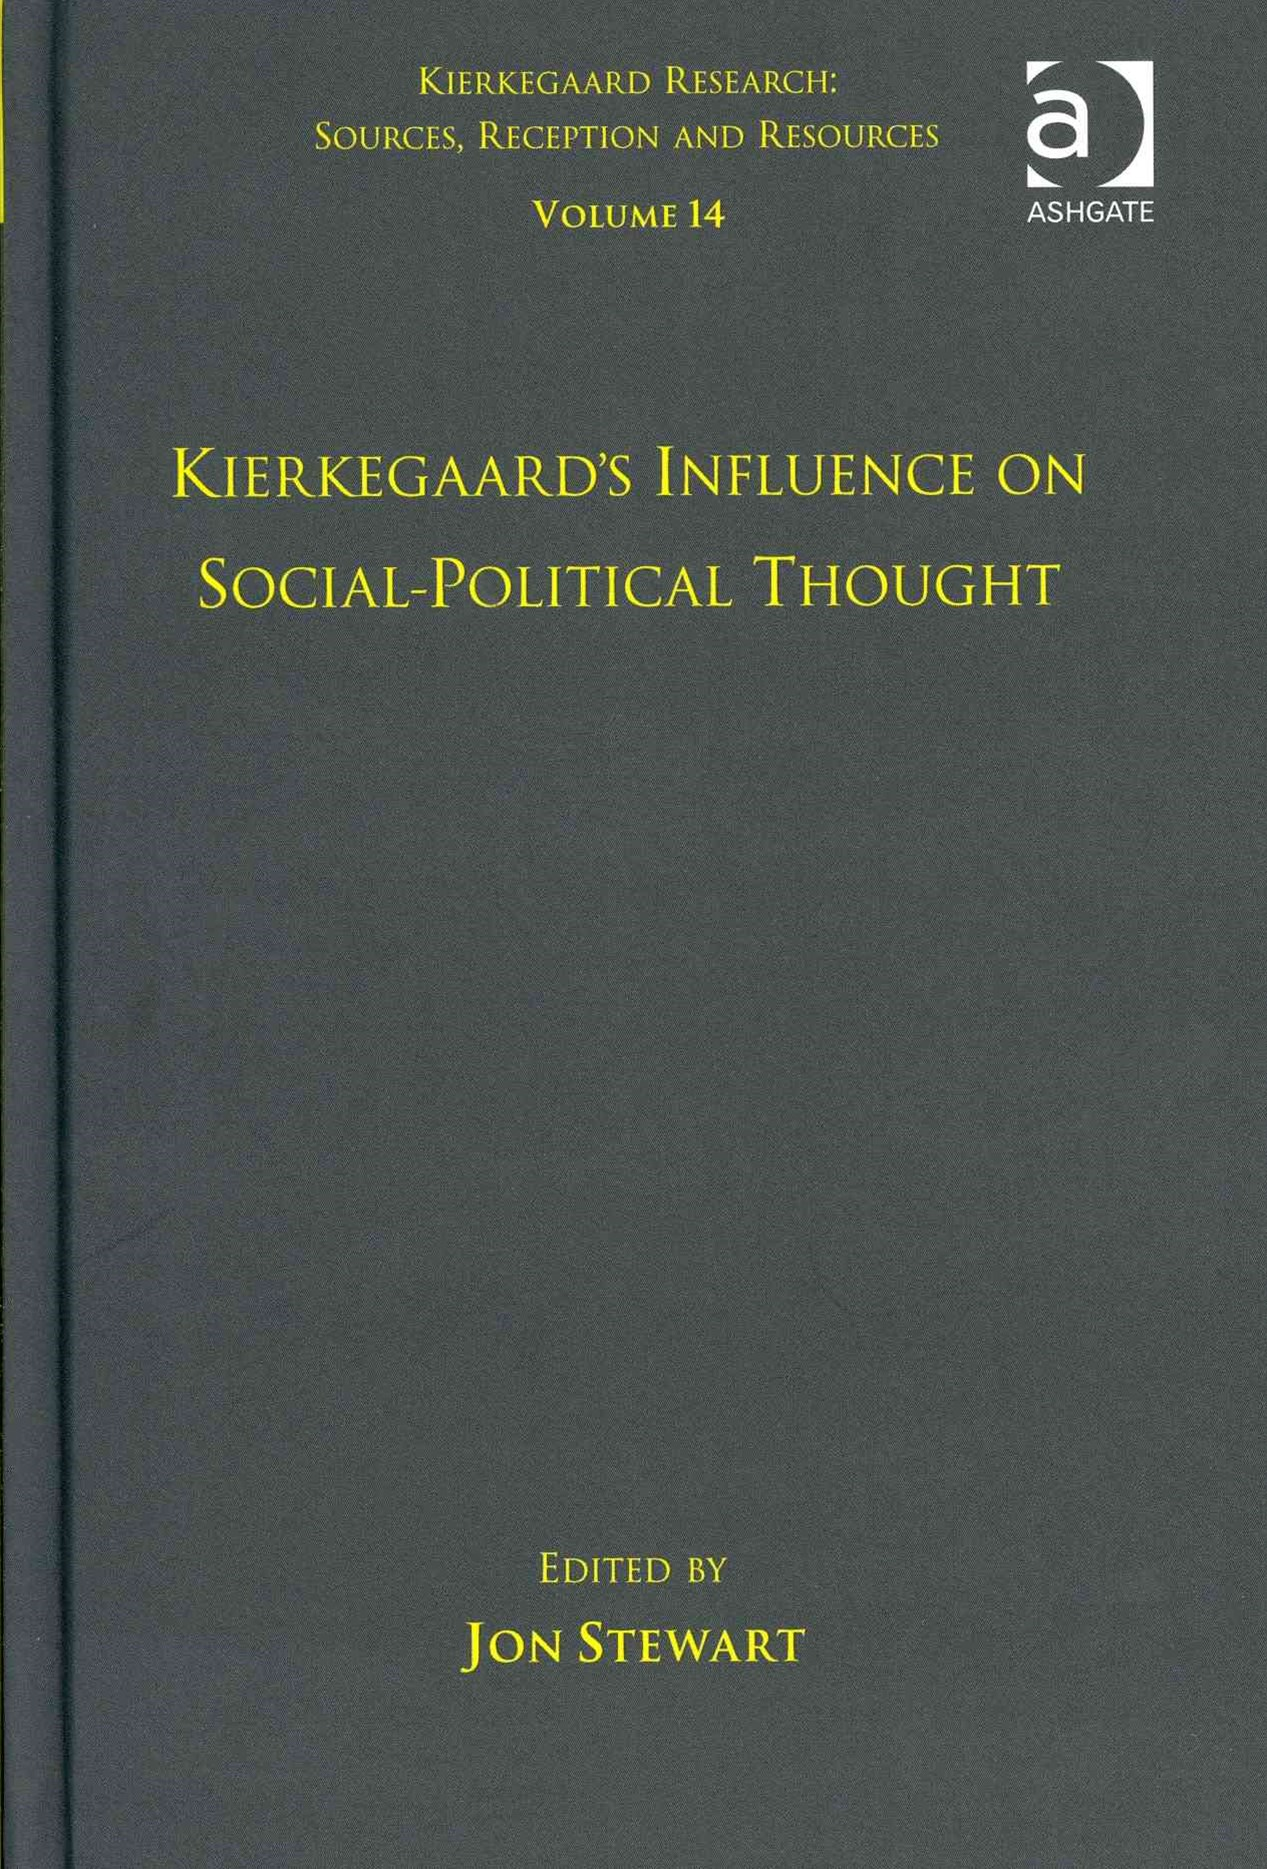 Kierkegaard's Influence on Social-Political Thought